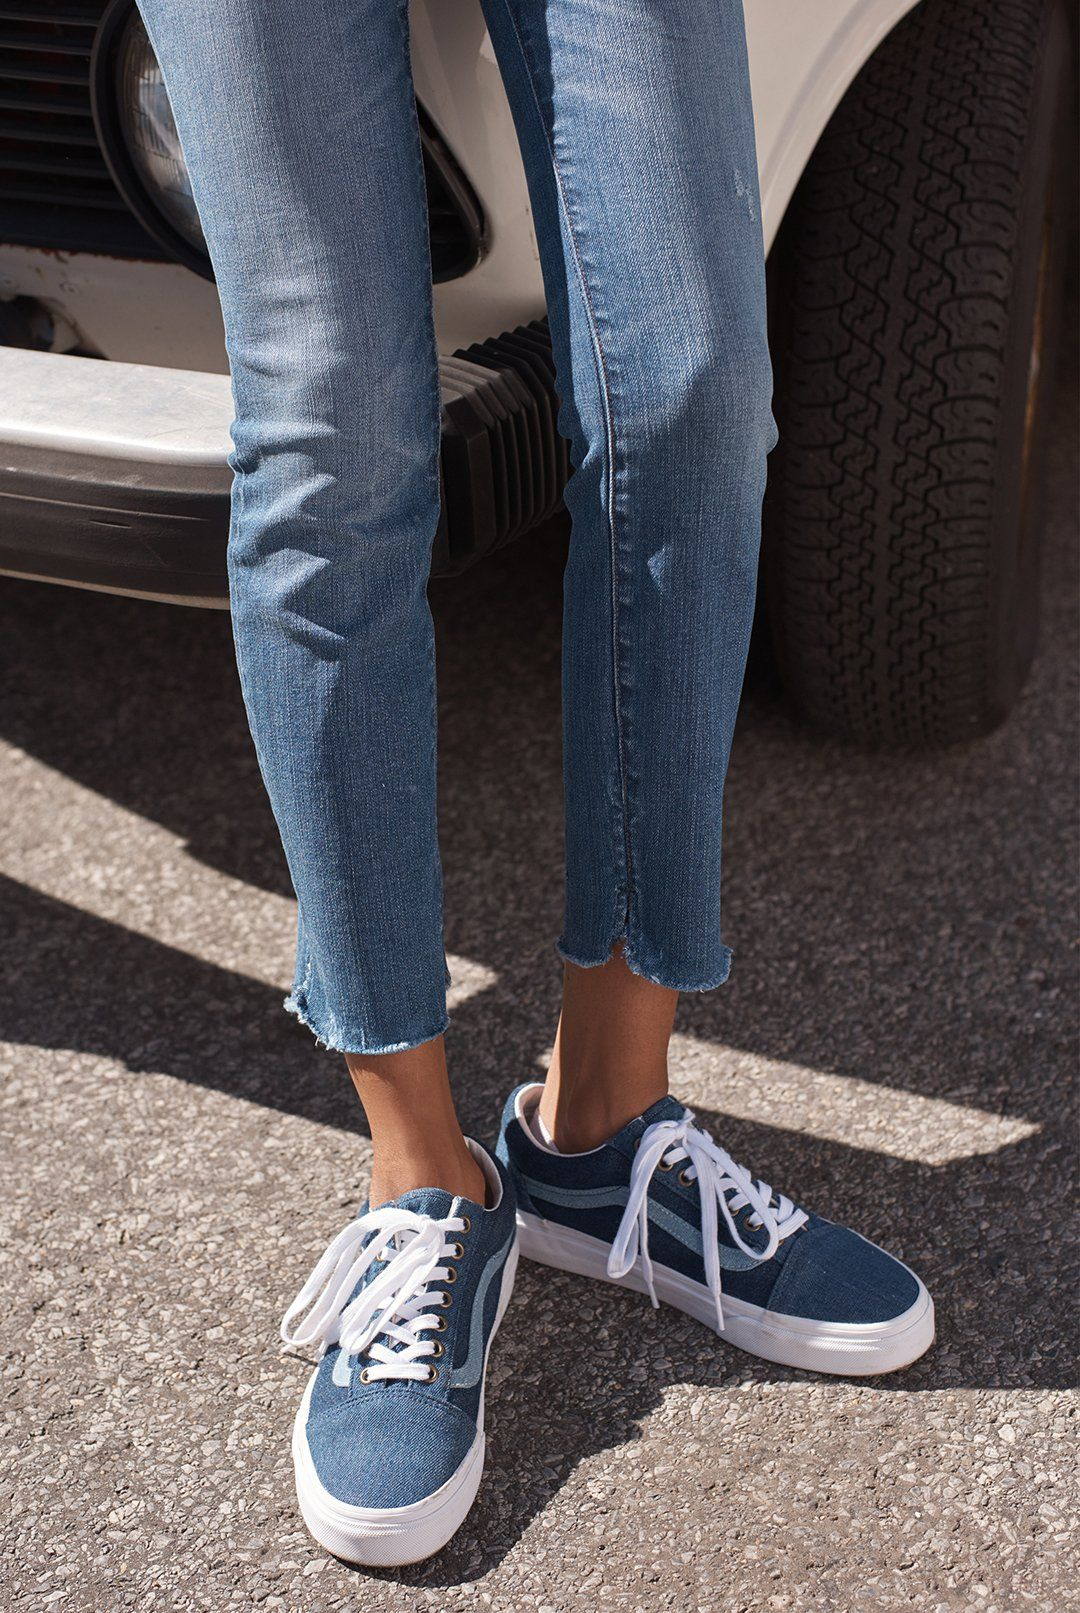 e351b2e965 madewell x vans sneakers worn with 10